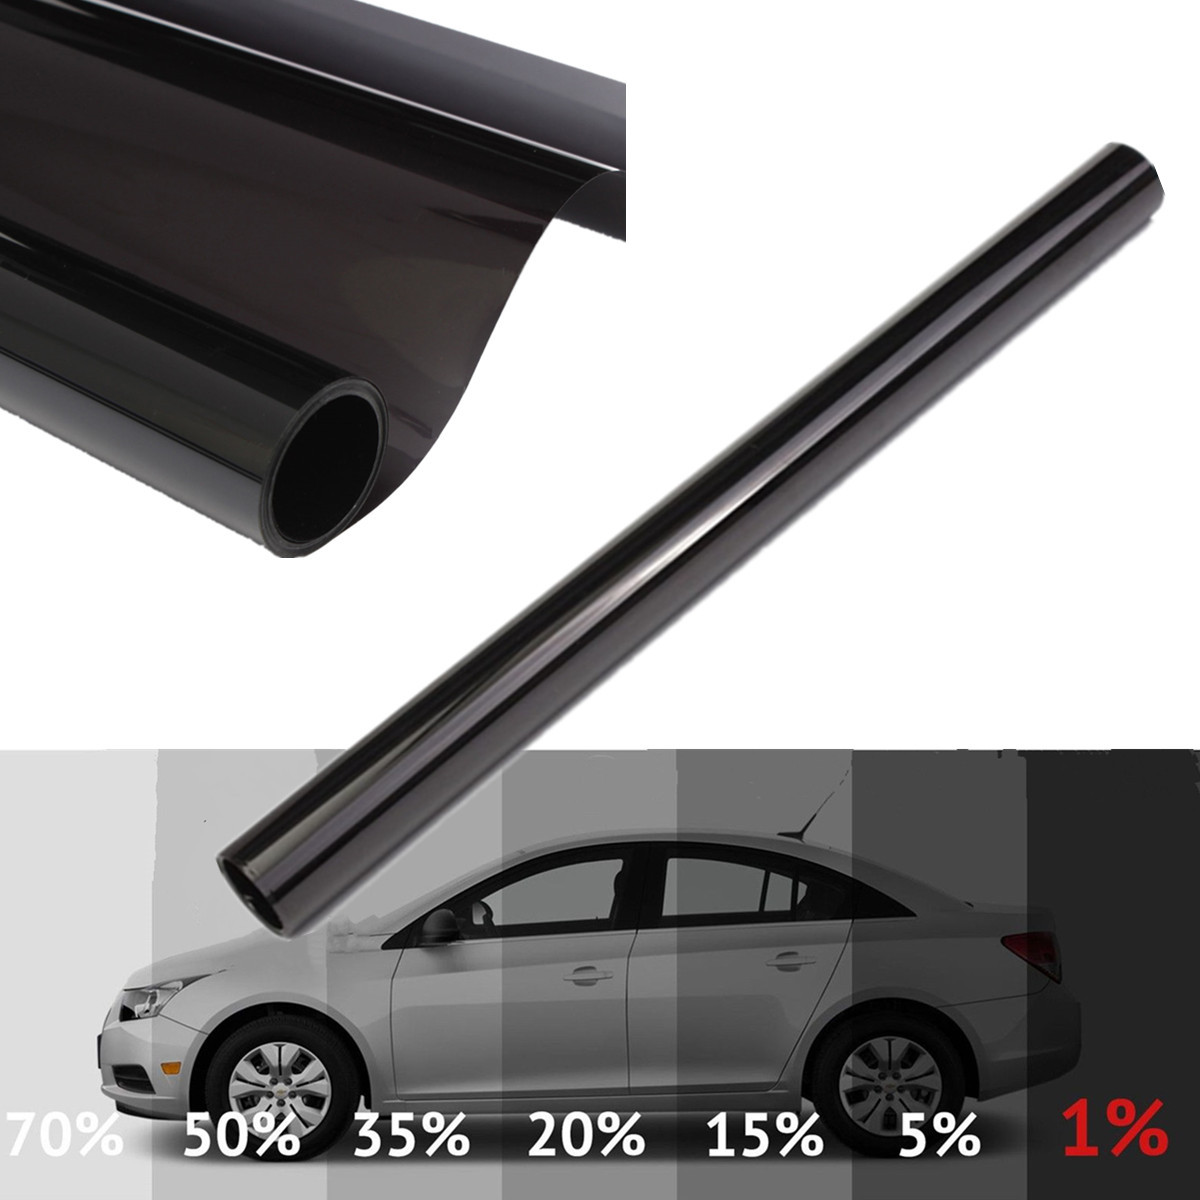 Uncut 6m Car Window Tint Tinting Film Roll 5% 15% 30% 50% VLT UV Insulation Auto Home Window Glass Solar UV Protector Stickers